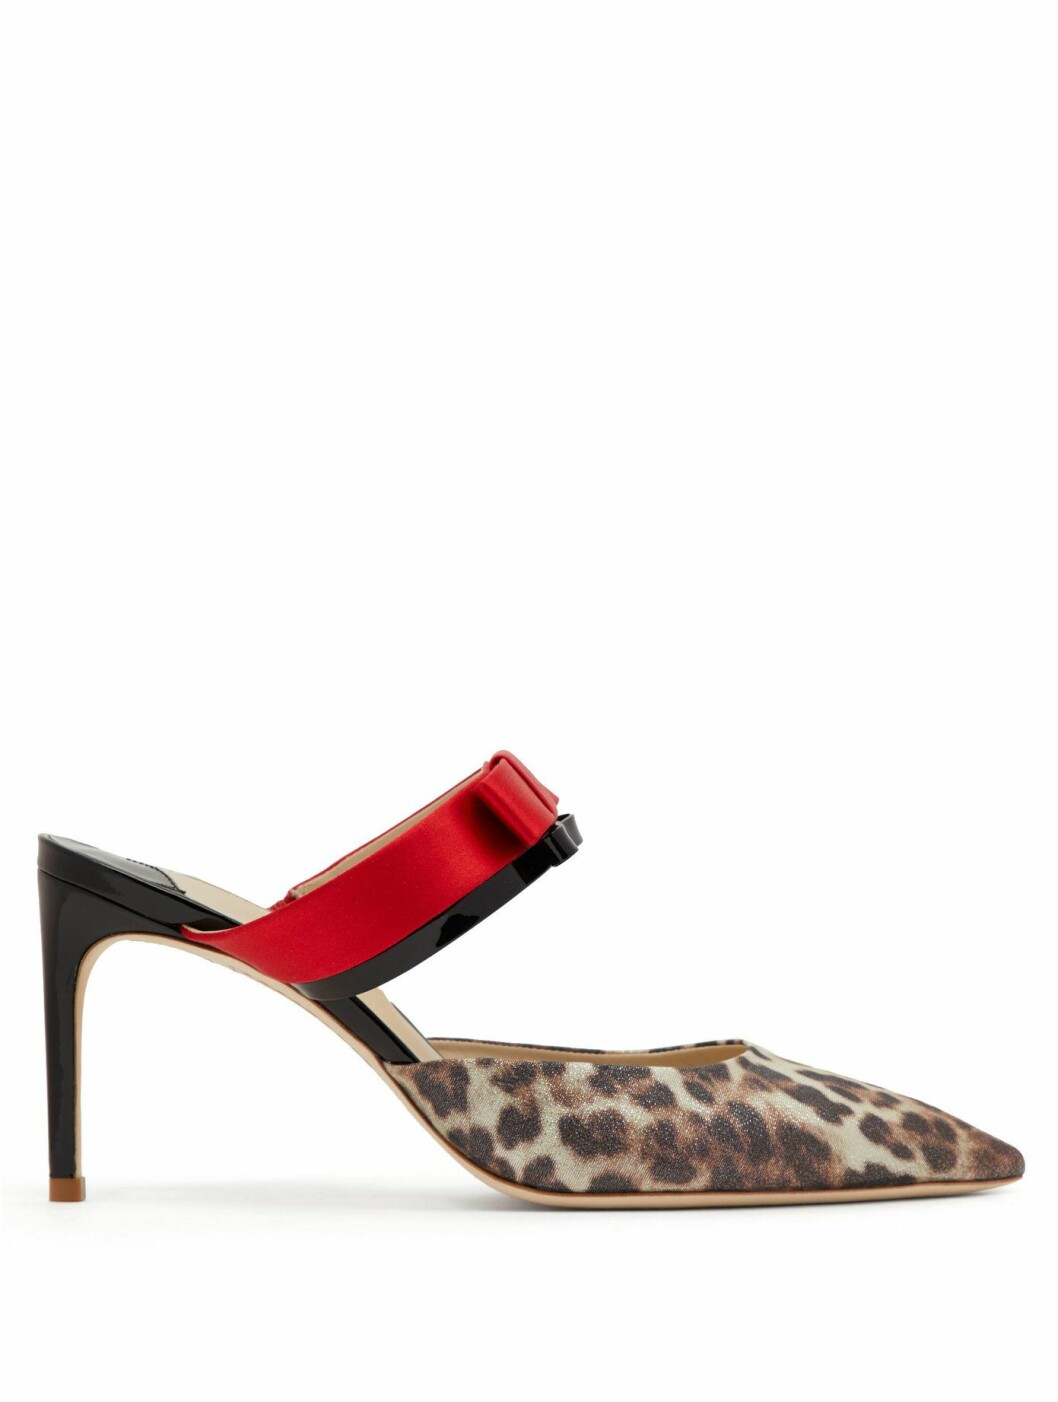 <strong>Sko fra Sophia Webster |3345,-| https:</strong>//www.matchesfashion.com/intl/products/Sophia-Webster-Andie-bow-trim-leopard-print-lurex-mules-1237257